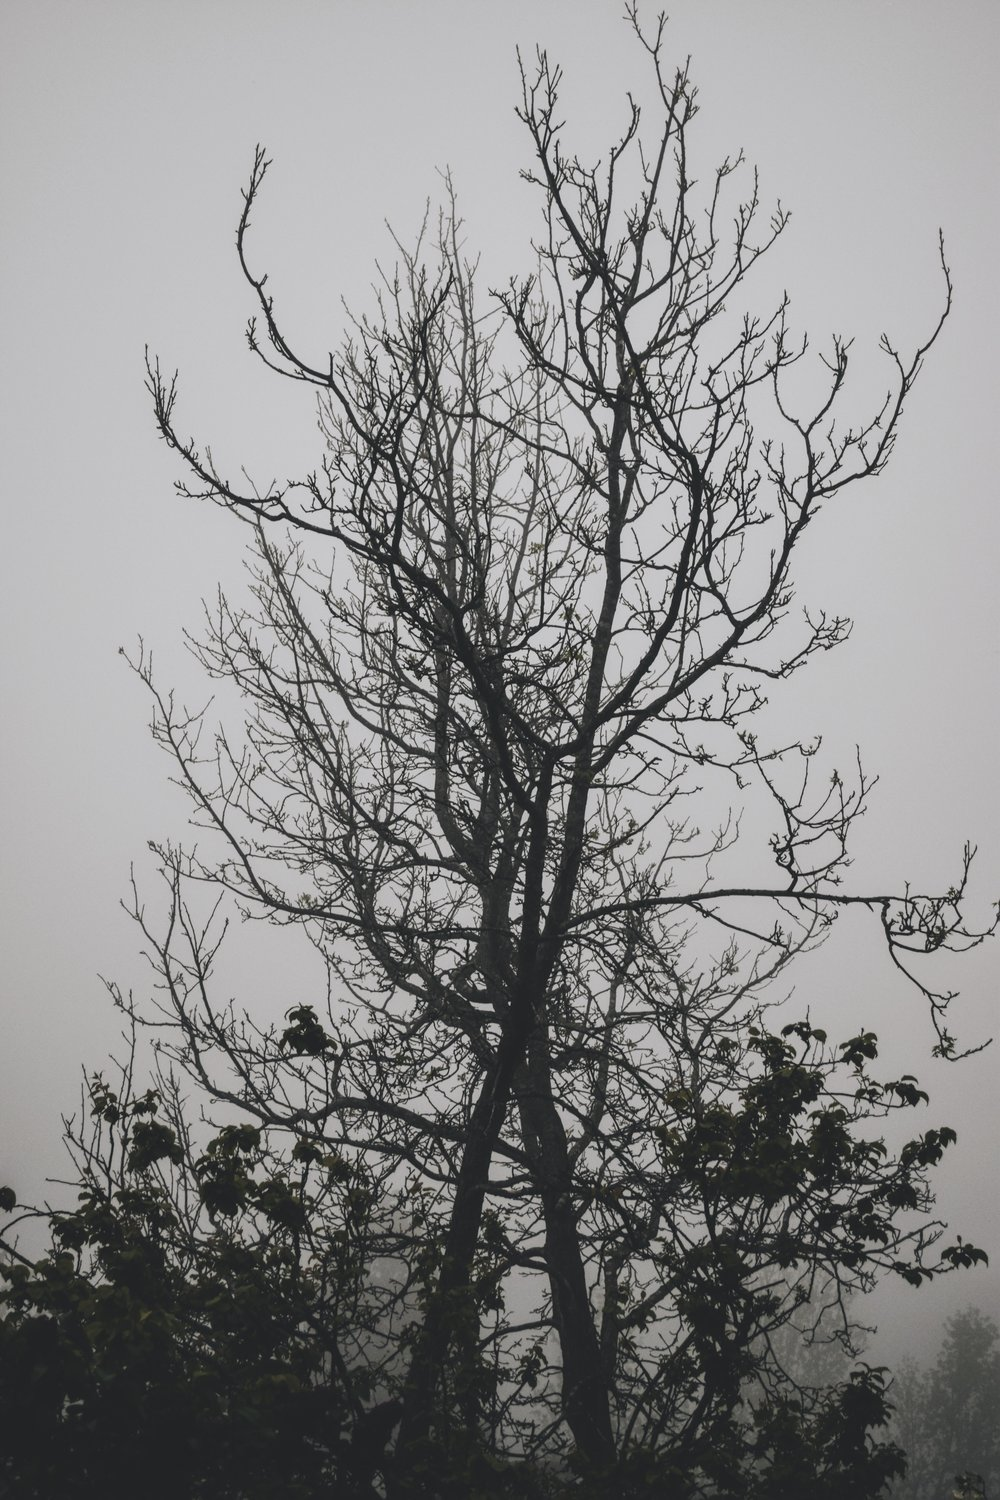 creepy misty trees